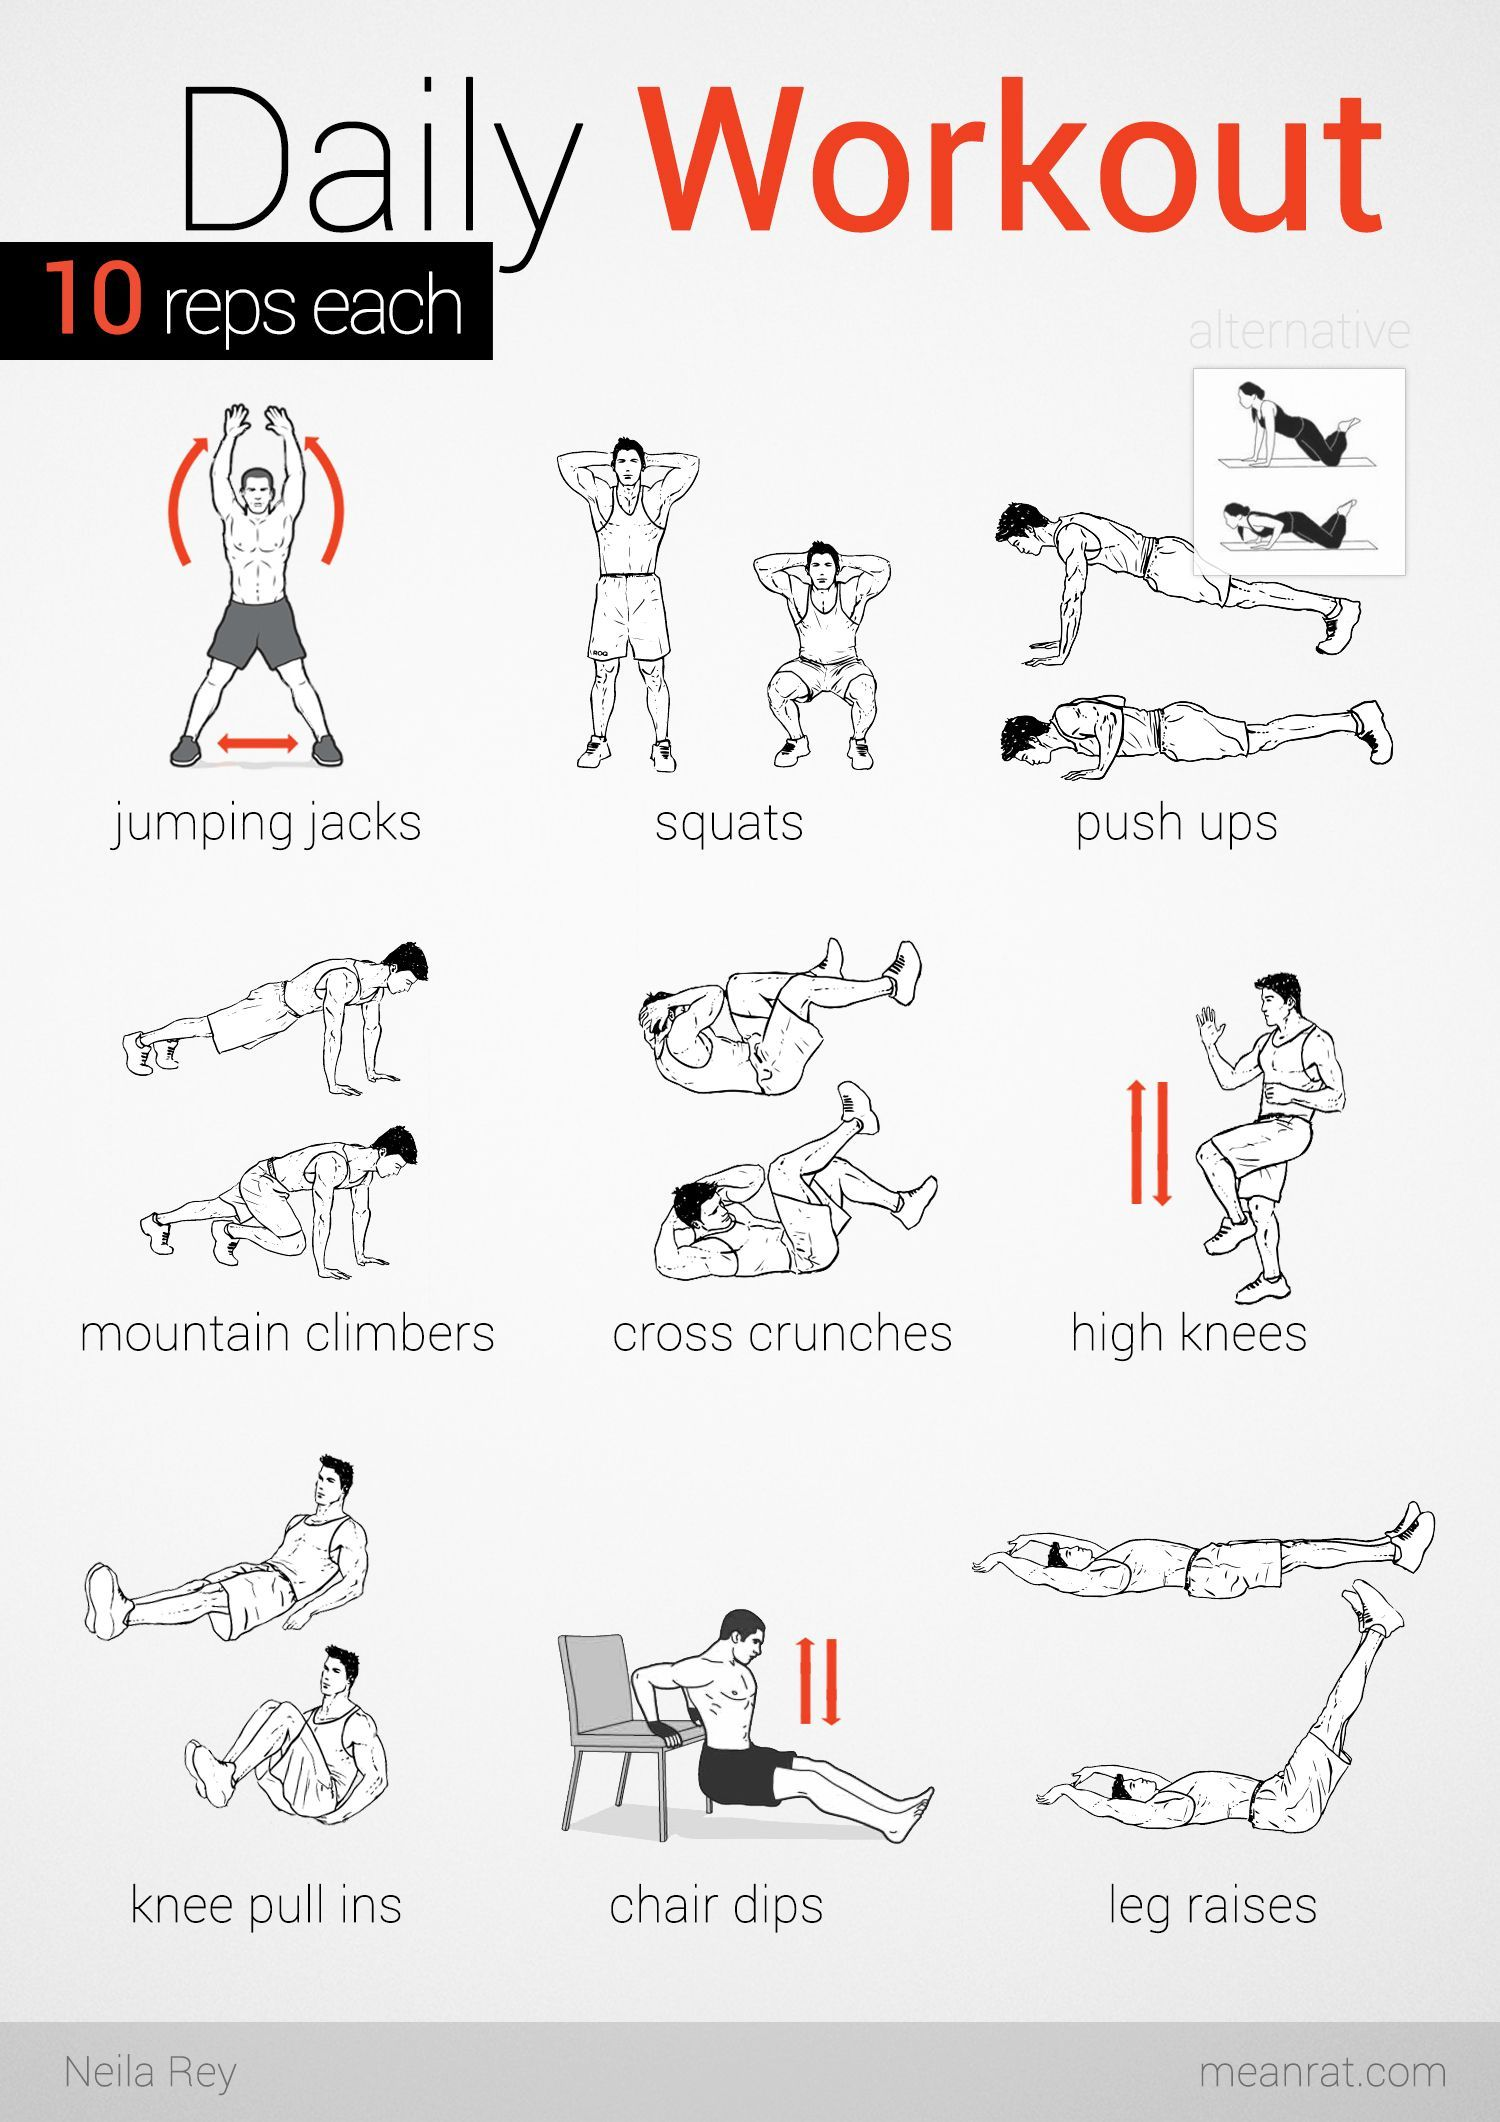 Gym Workout Chart For Chest For Men Chest Workout At Home No Weights Body Pinterest